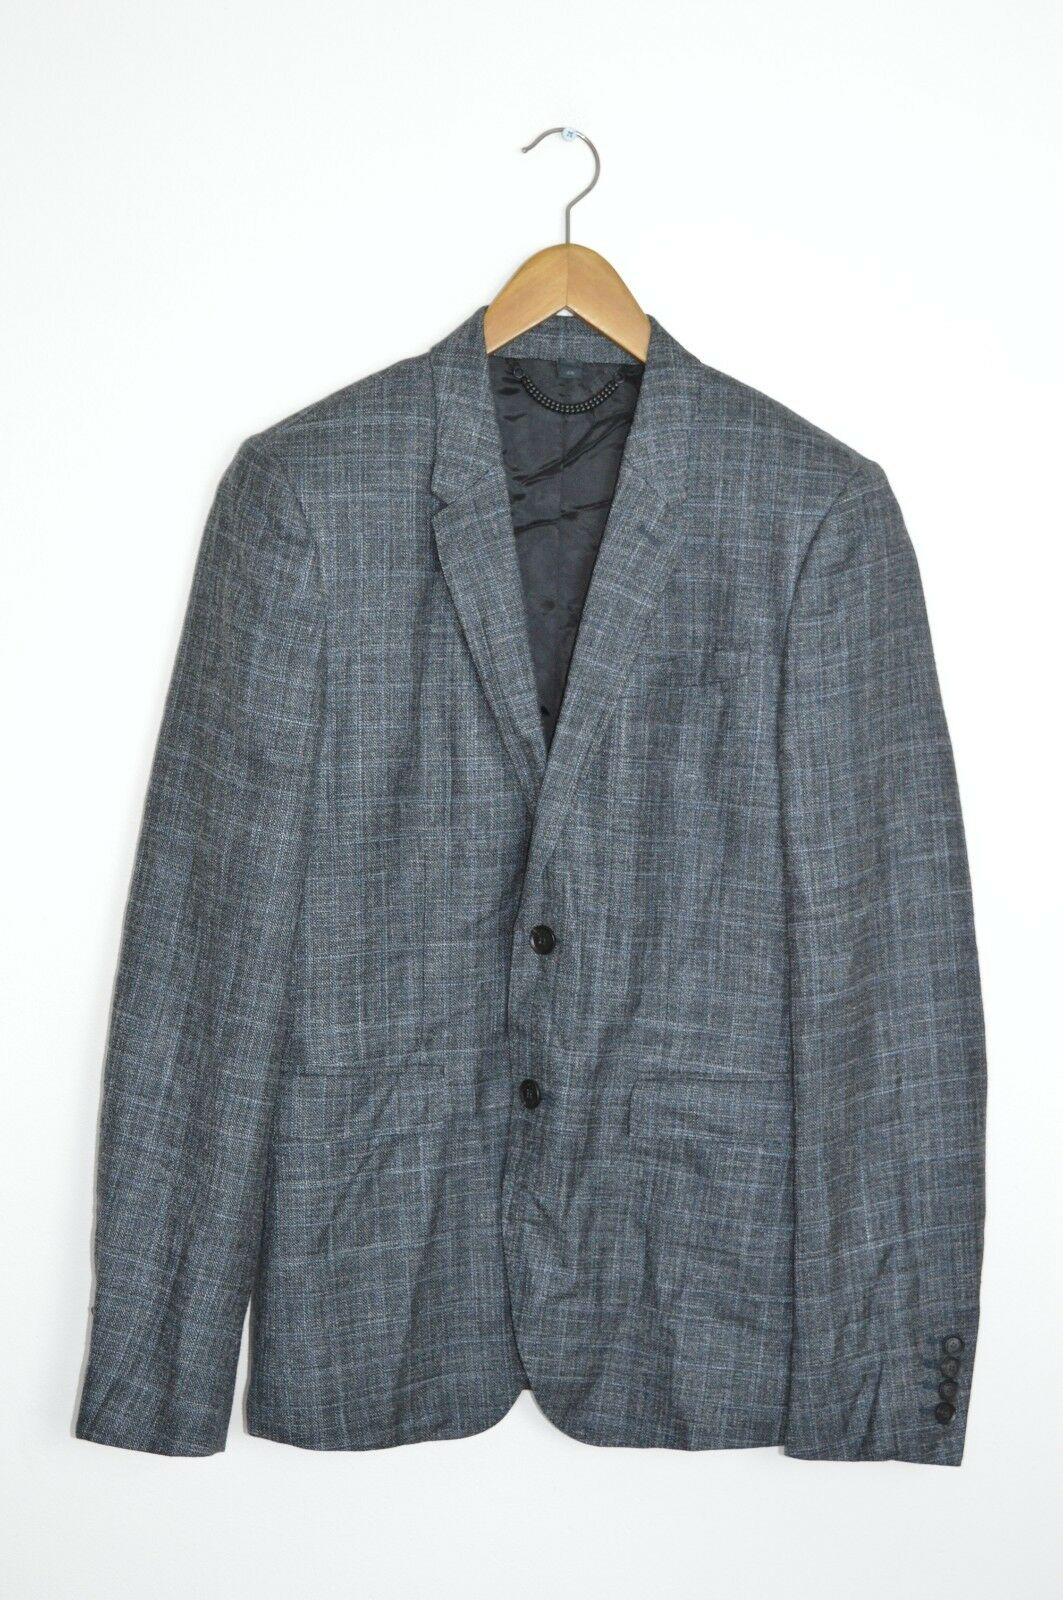 *AWESOME* BURBERRY PRORSUM Mens Wool/silk/linen tweed blazer Jacket SMALL 38